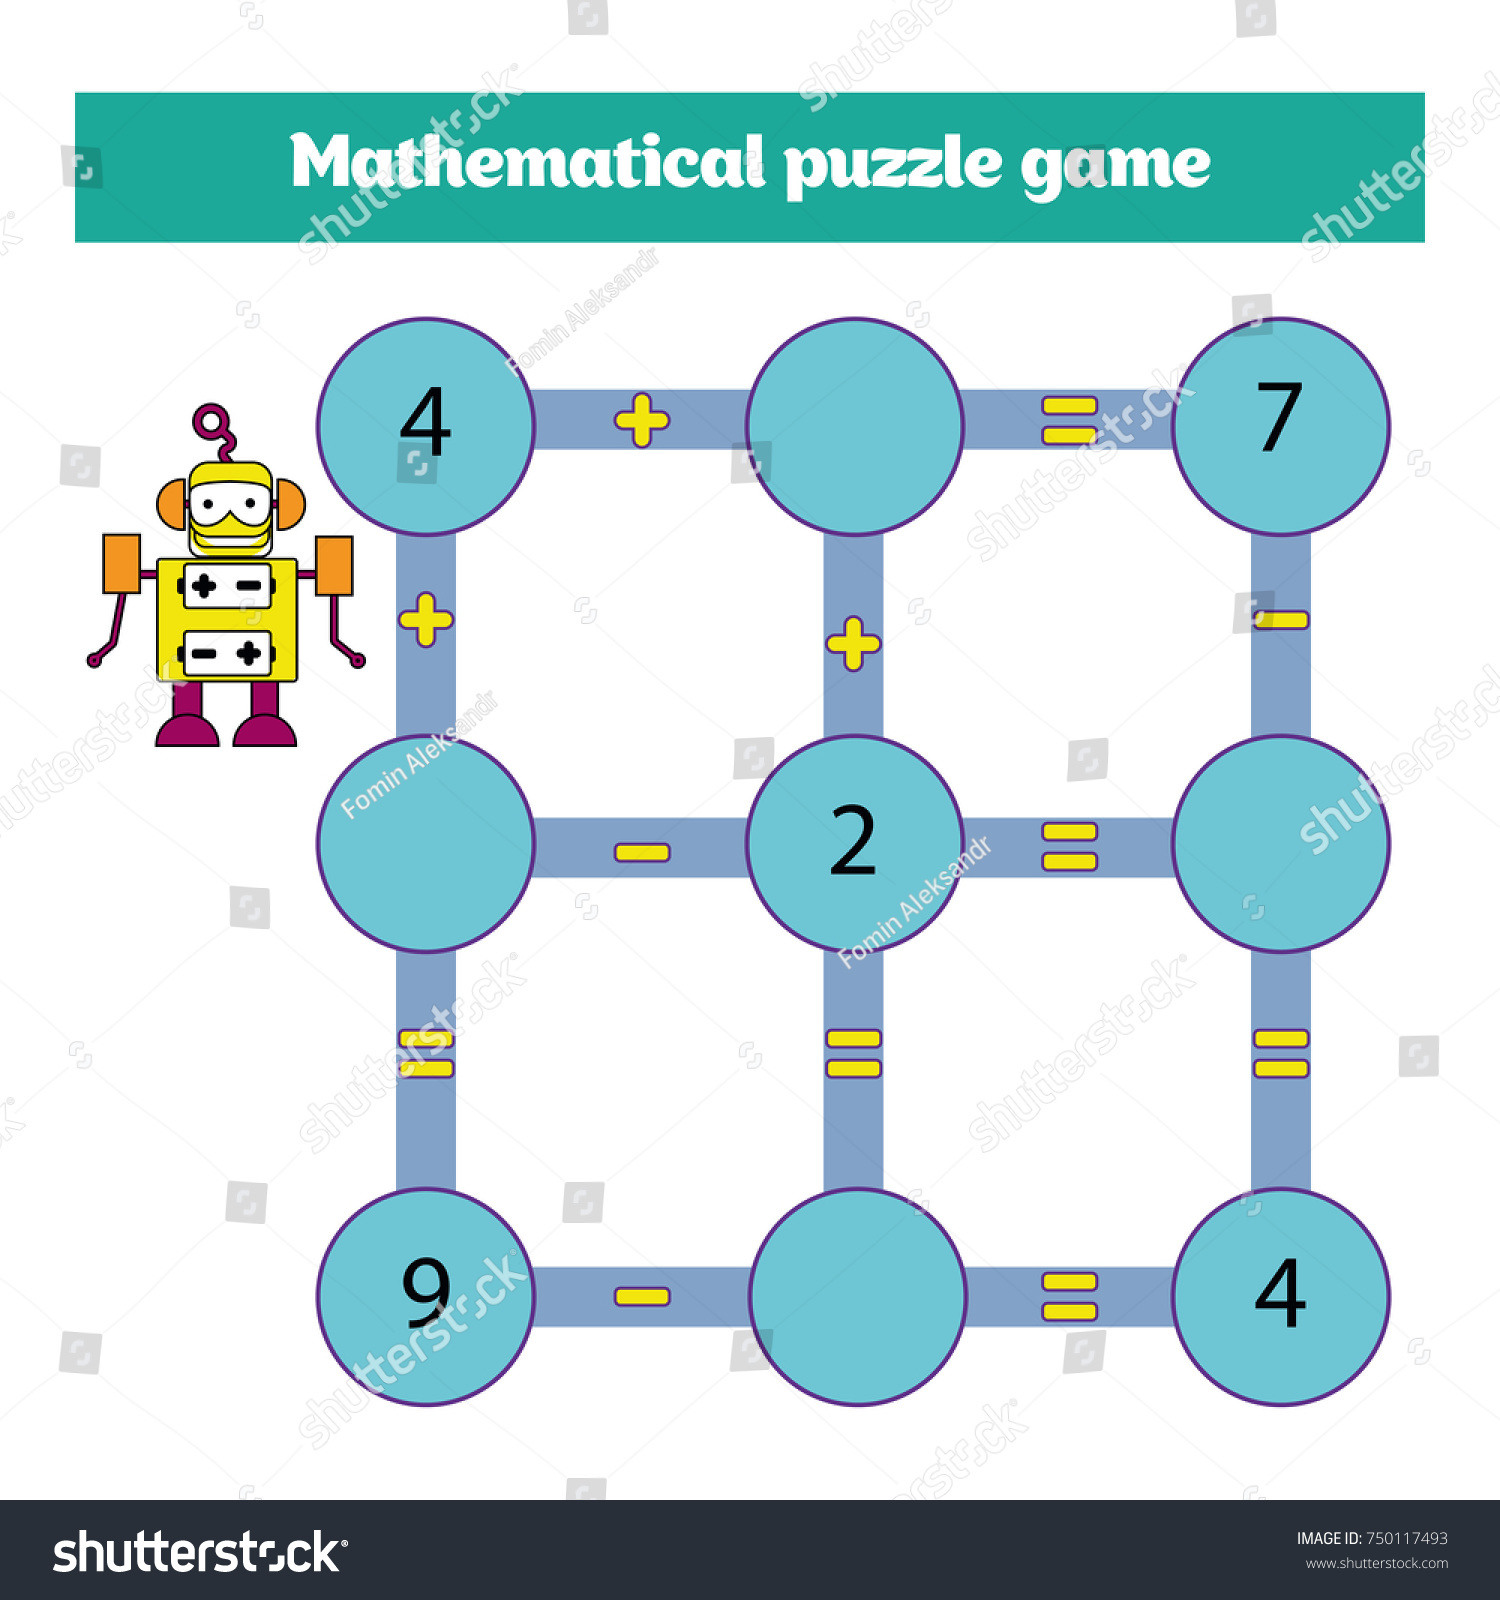 Mathematical Puzzle Game Learning Mathematics Tasks Stock Vector ...